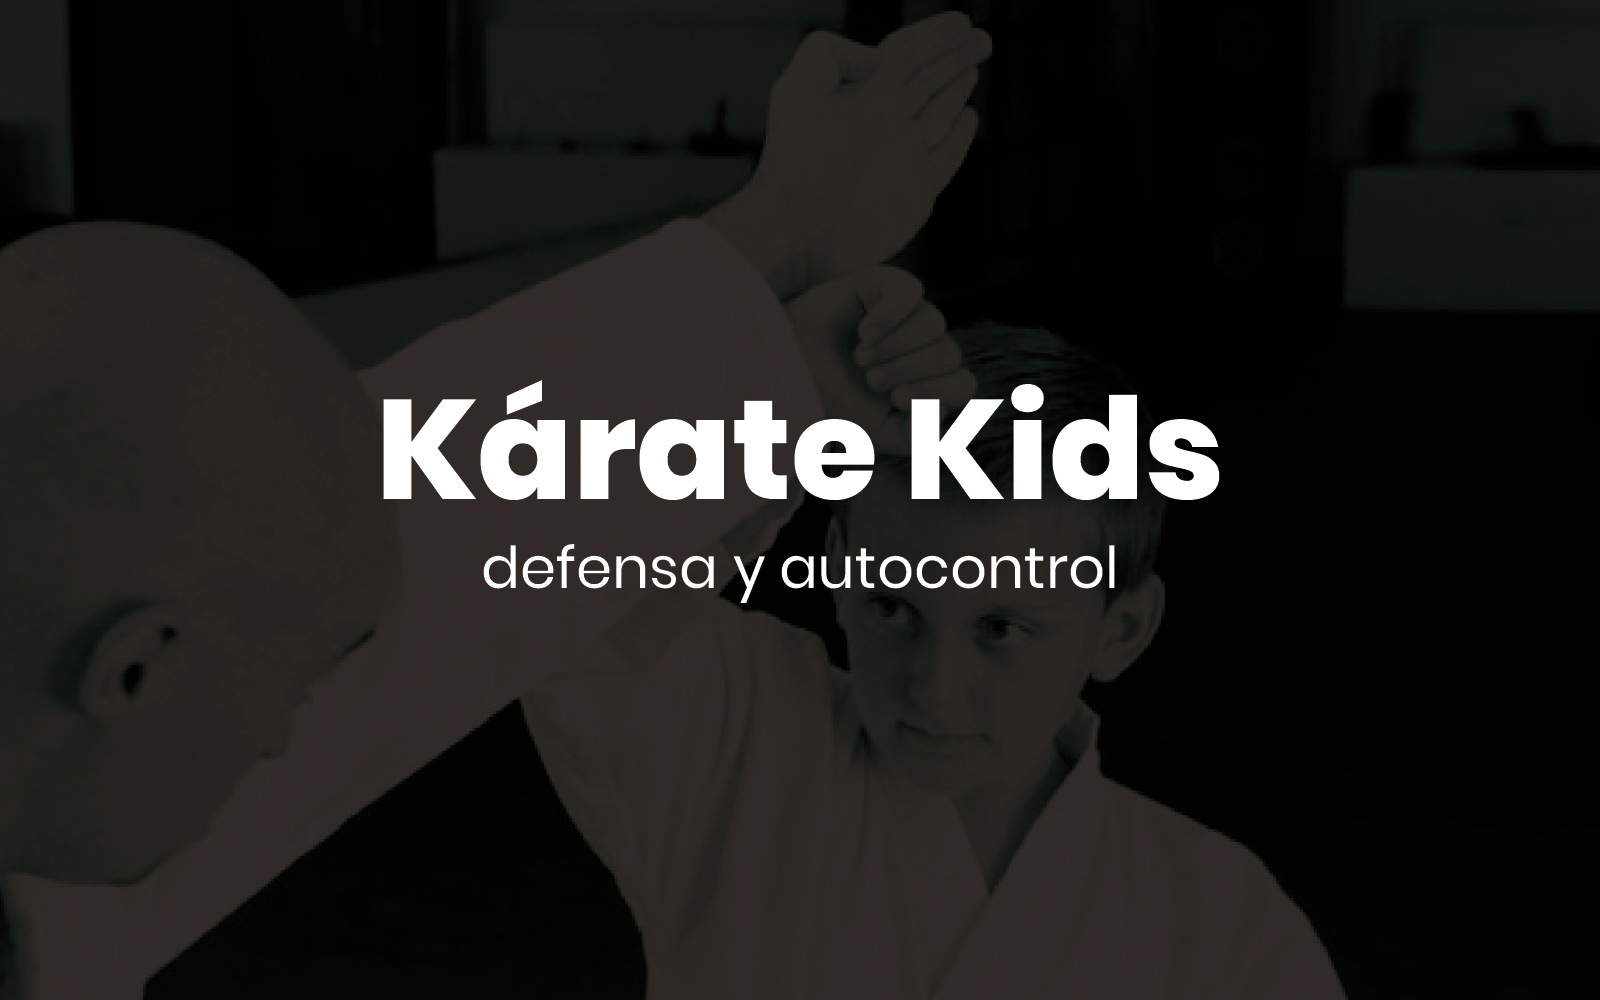 Kárate Kids